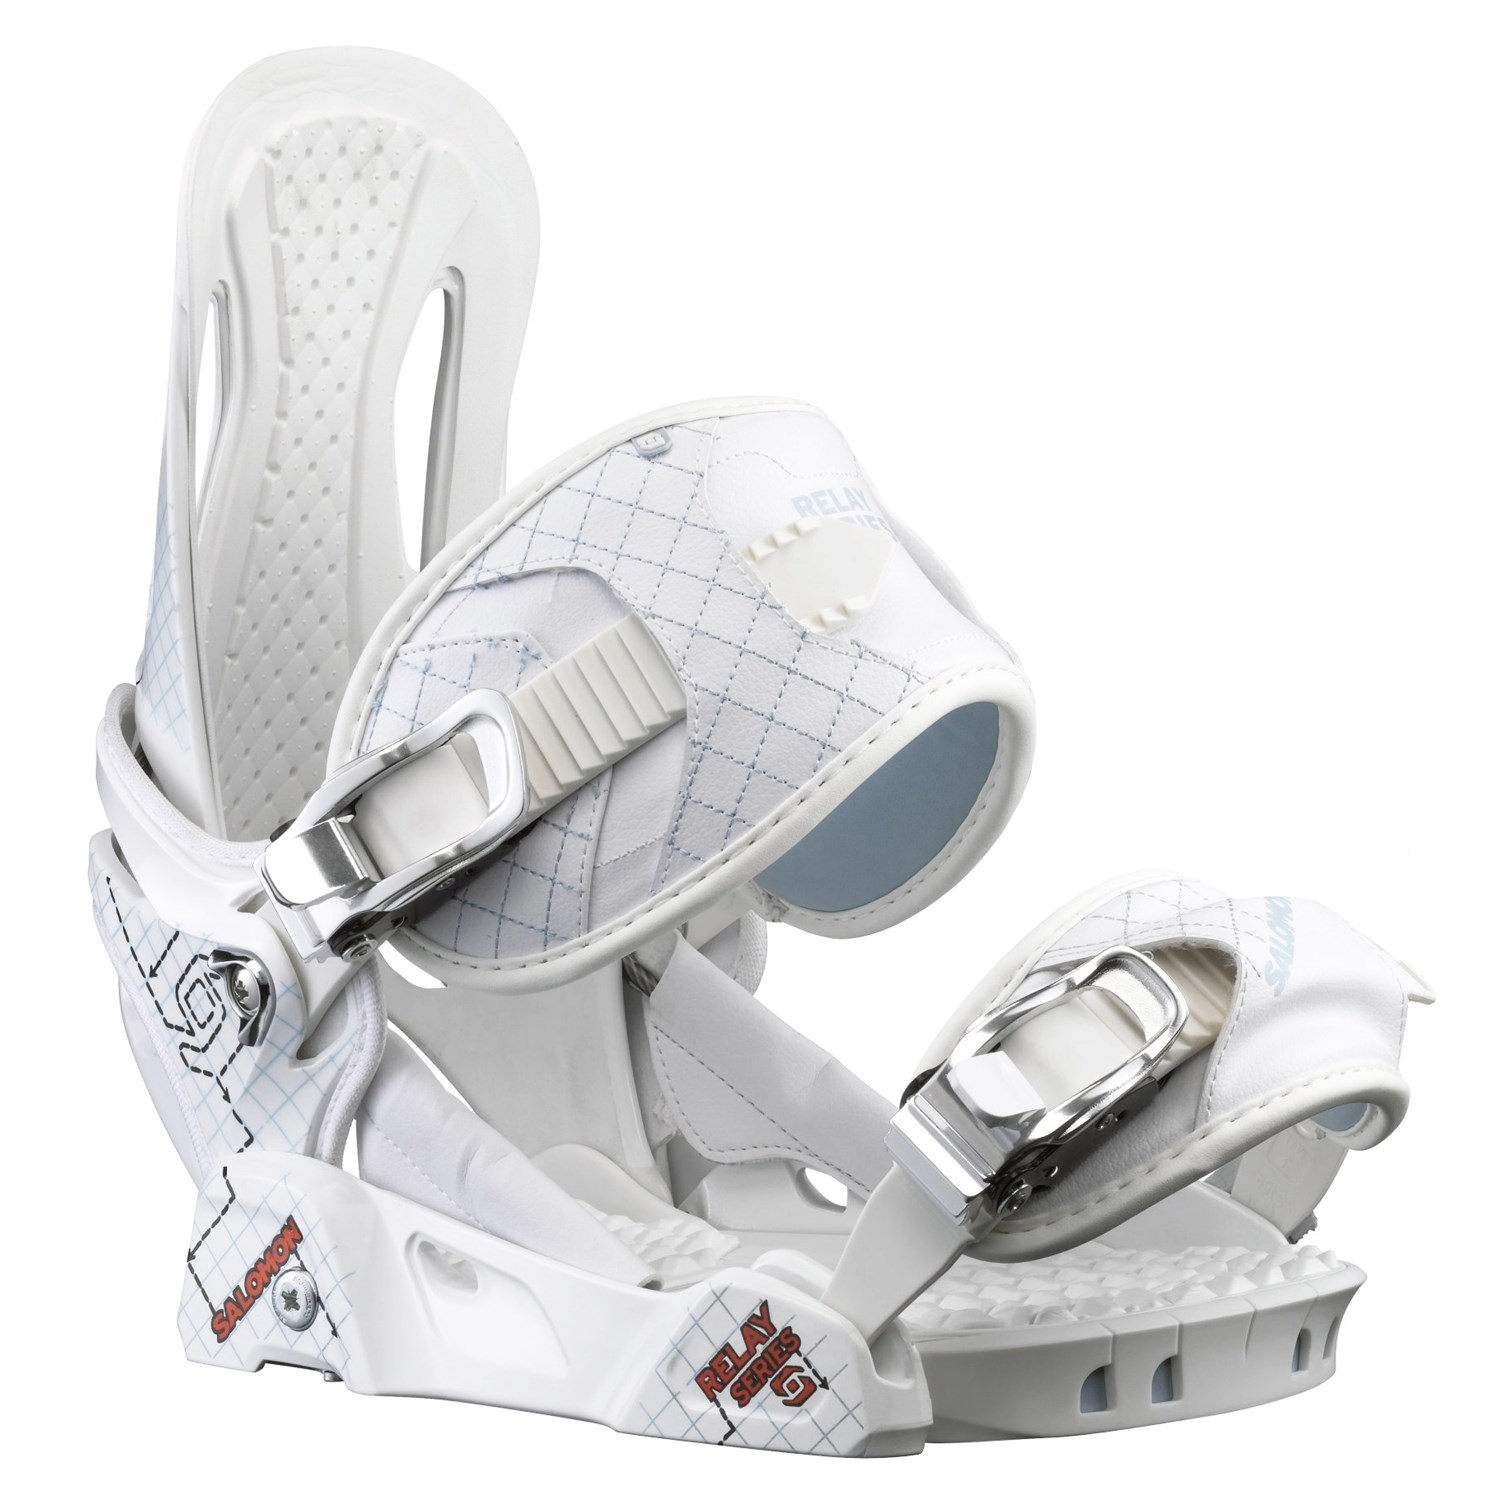 Salomon Relay Series Light Snowboard Bindings  Evo Outlet - Basic http relay binding